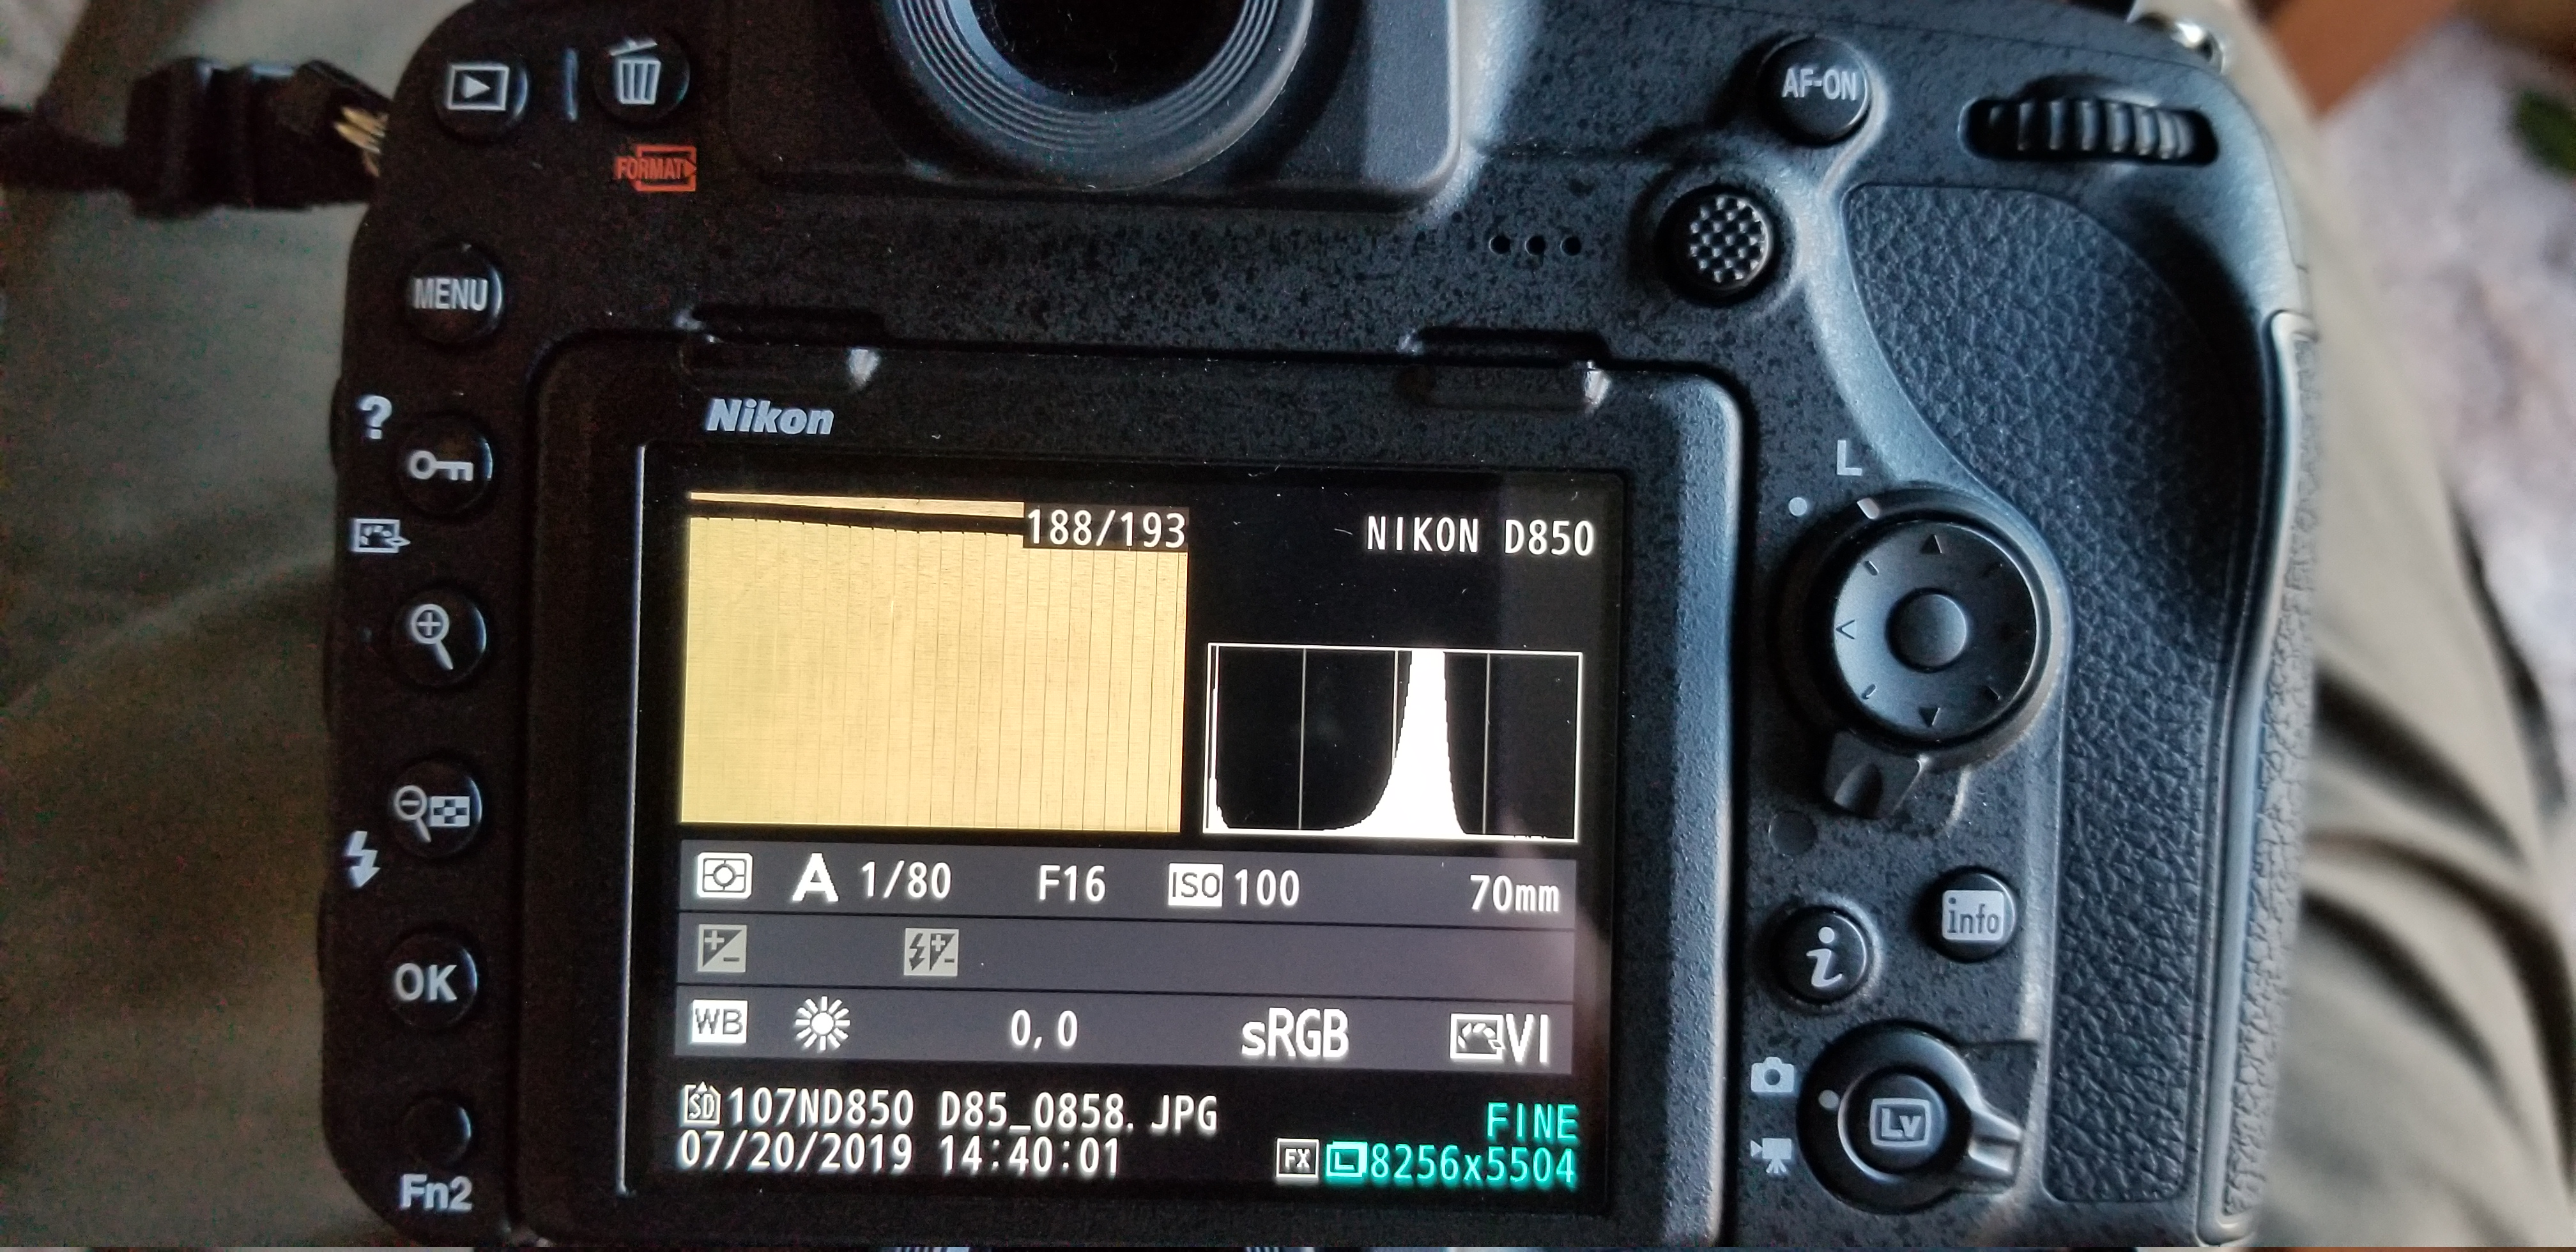 D850 underexposing in Aperture priority mode | Page 2